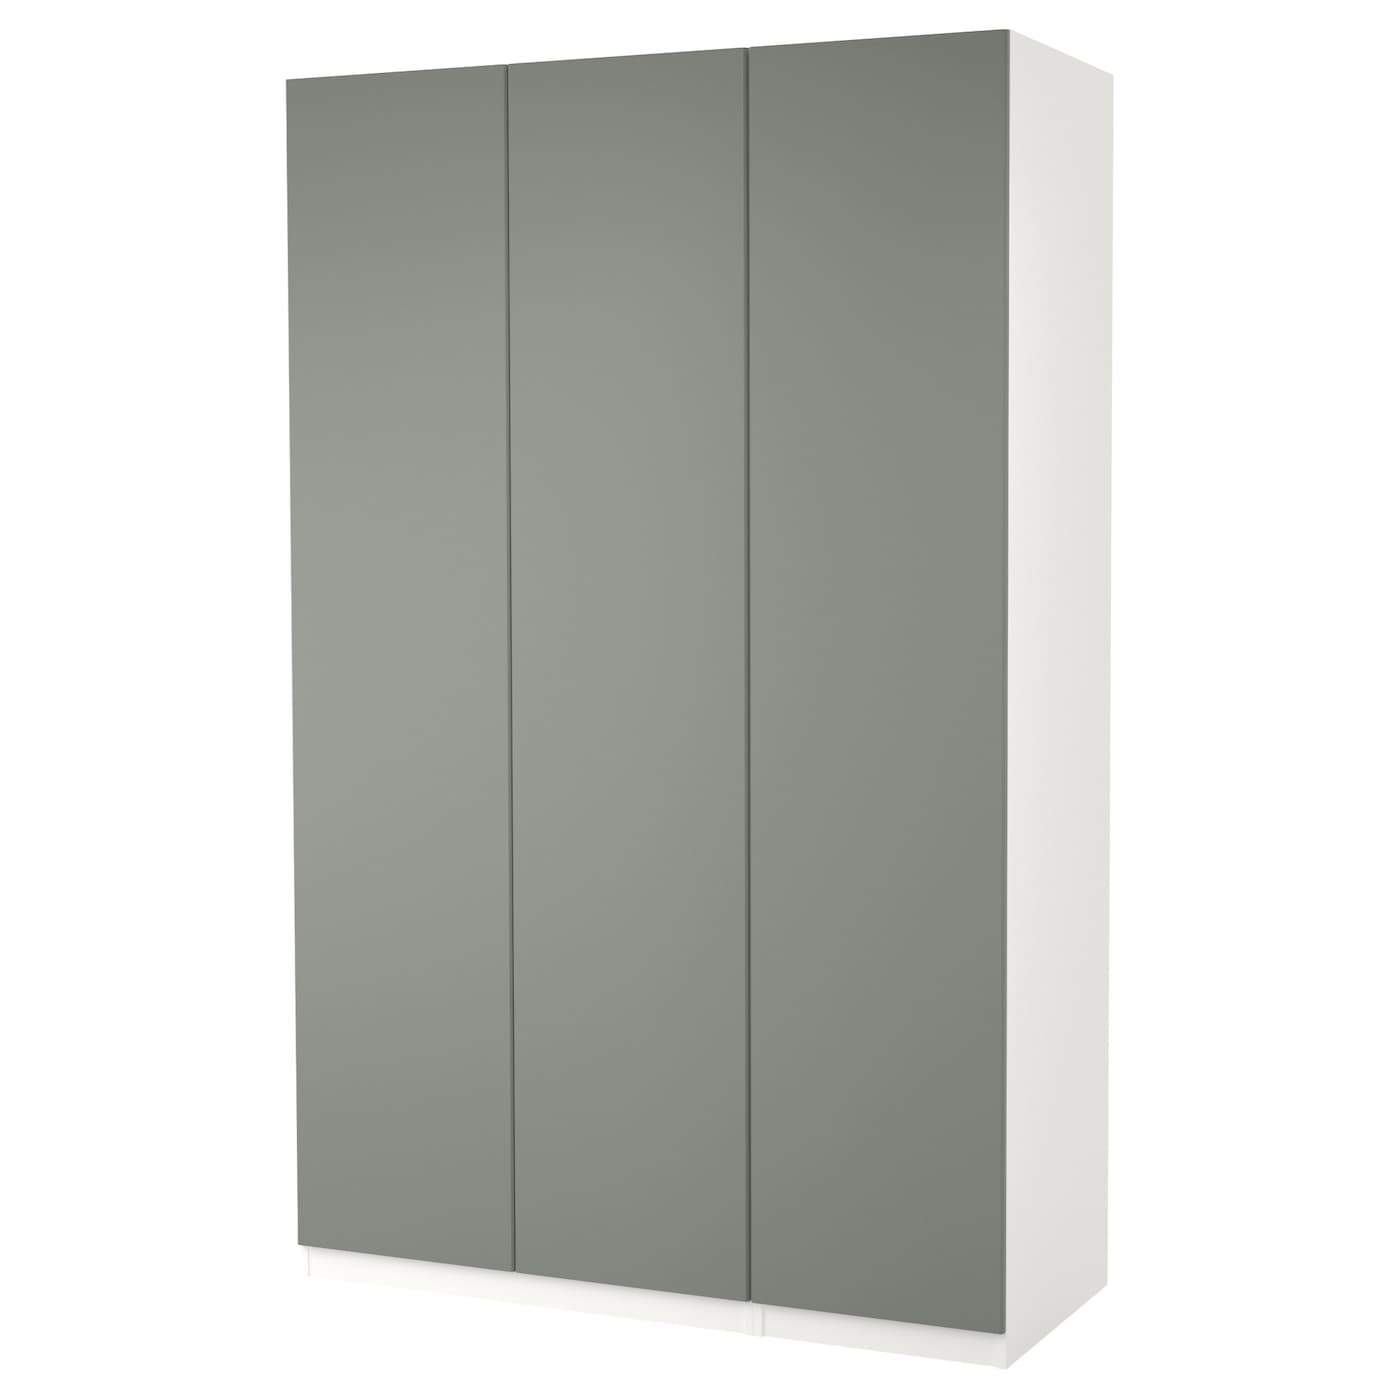 Pax Wardrobe White Reinsvoll Grey Green 150 X 60 X 236 Cm